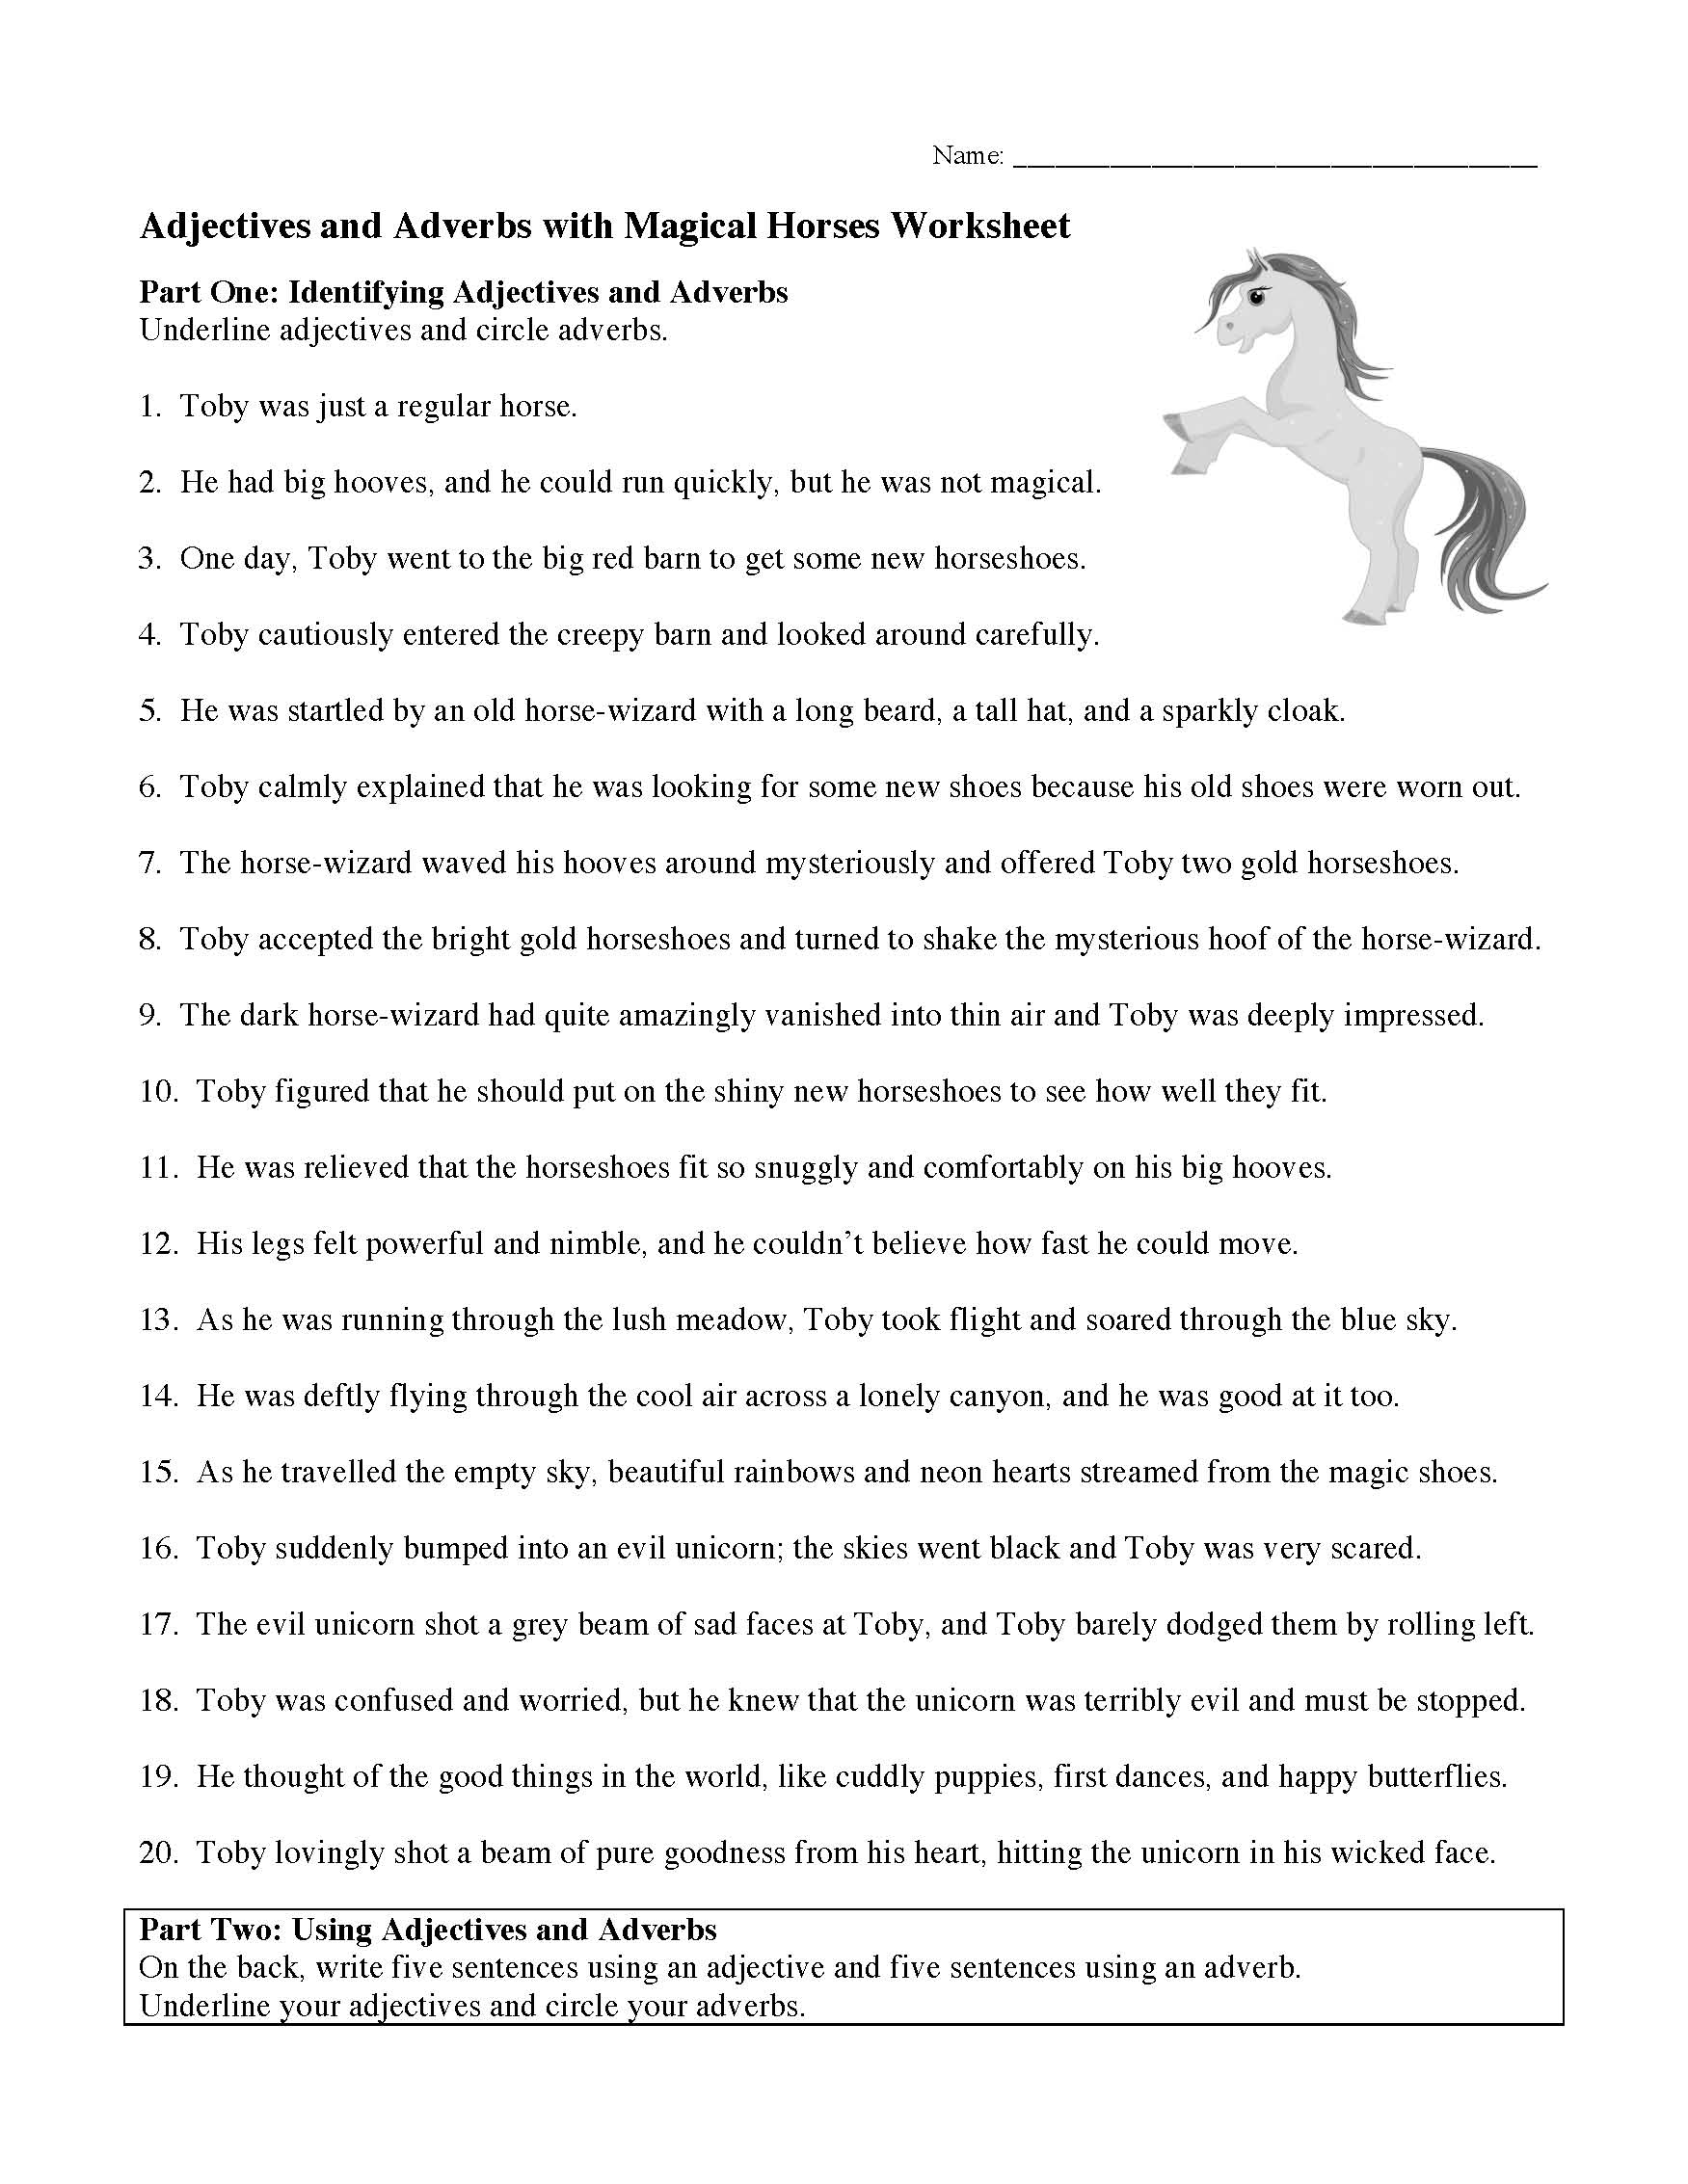 This is a preview image of the Adjectives and Adverbs with Magical Horses Worksheet.